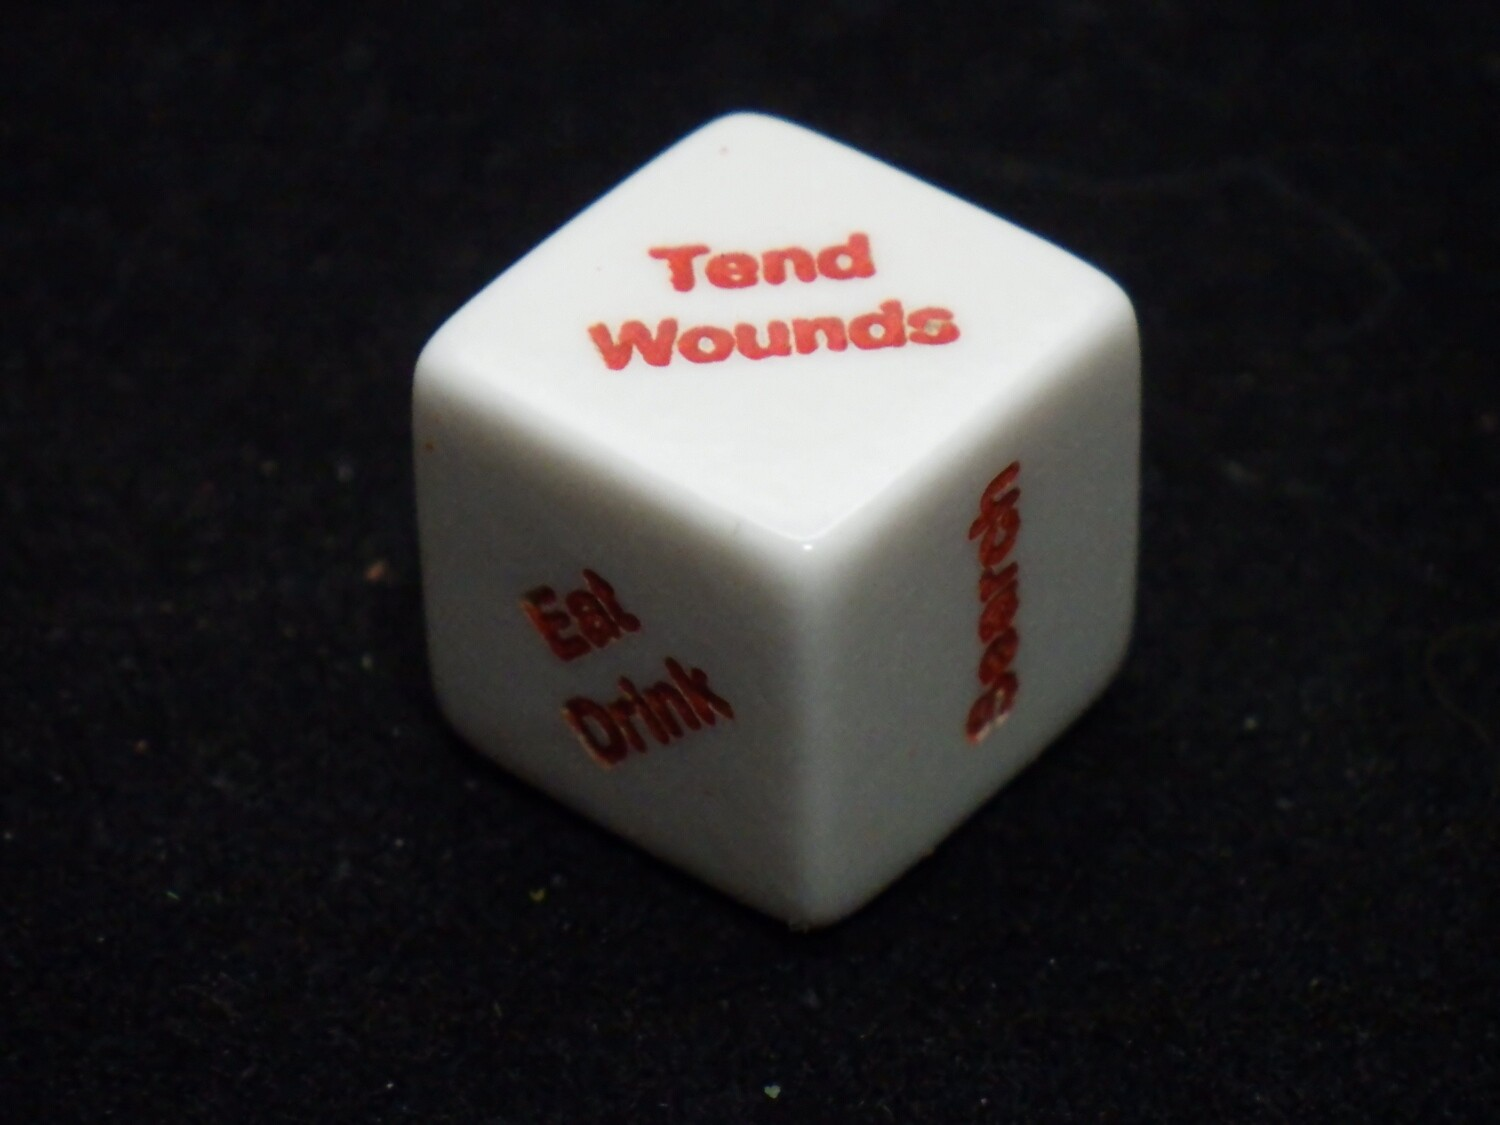 Action V2 Decision Maker 1D6 Die Custom 16mm Loot, Tend Wounds, Eat Drink, Rest, Search, Assist Other, Gaming Tabletop RPG Dice Roleplay